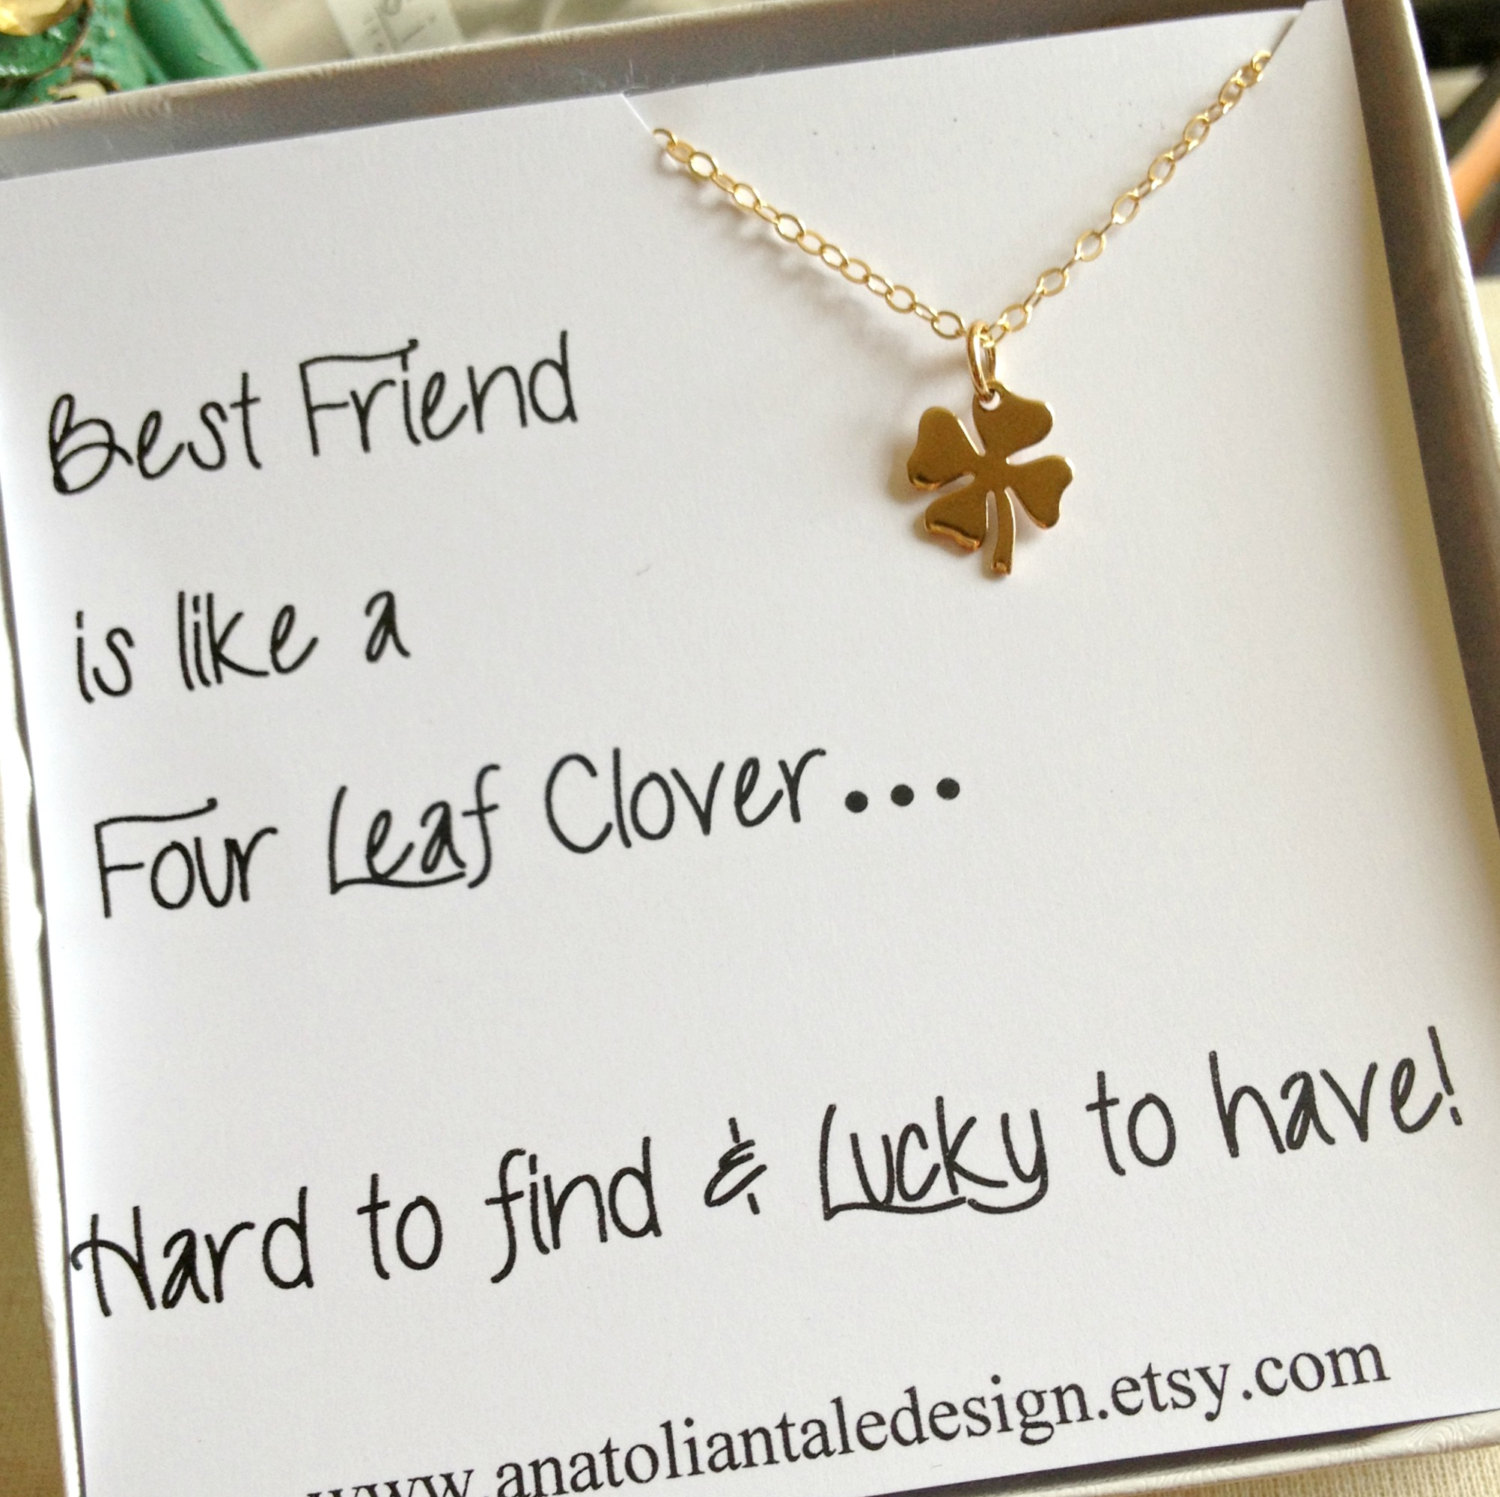 Quotes For Best Friend Birthday Girl: Cute Best Friend Birthday Quotes. QuotesGram